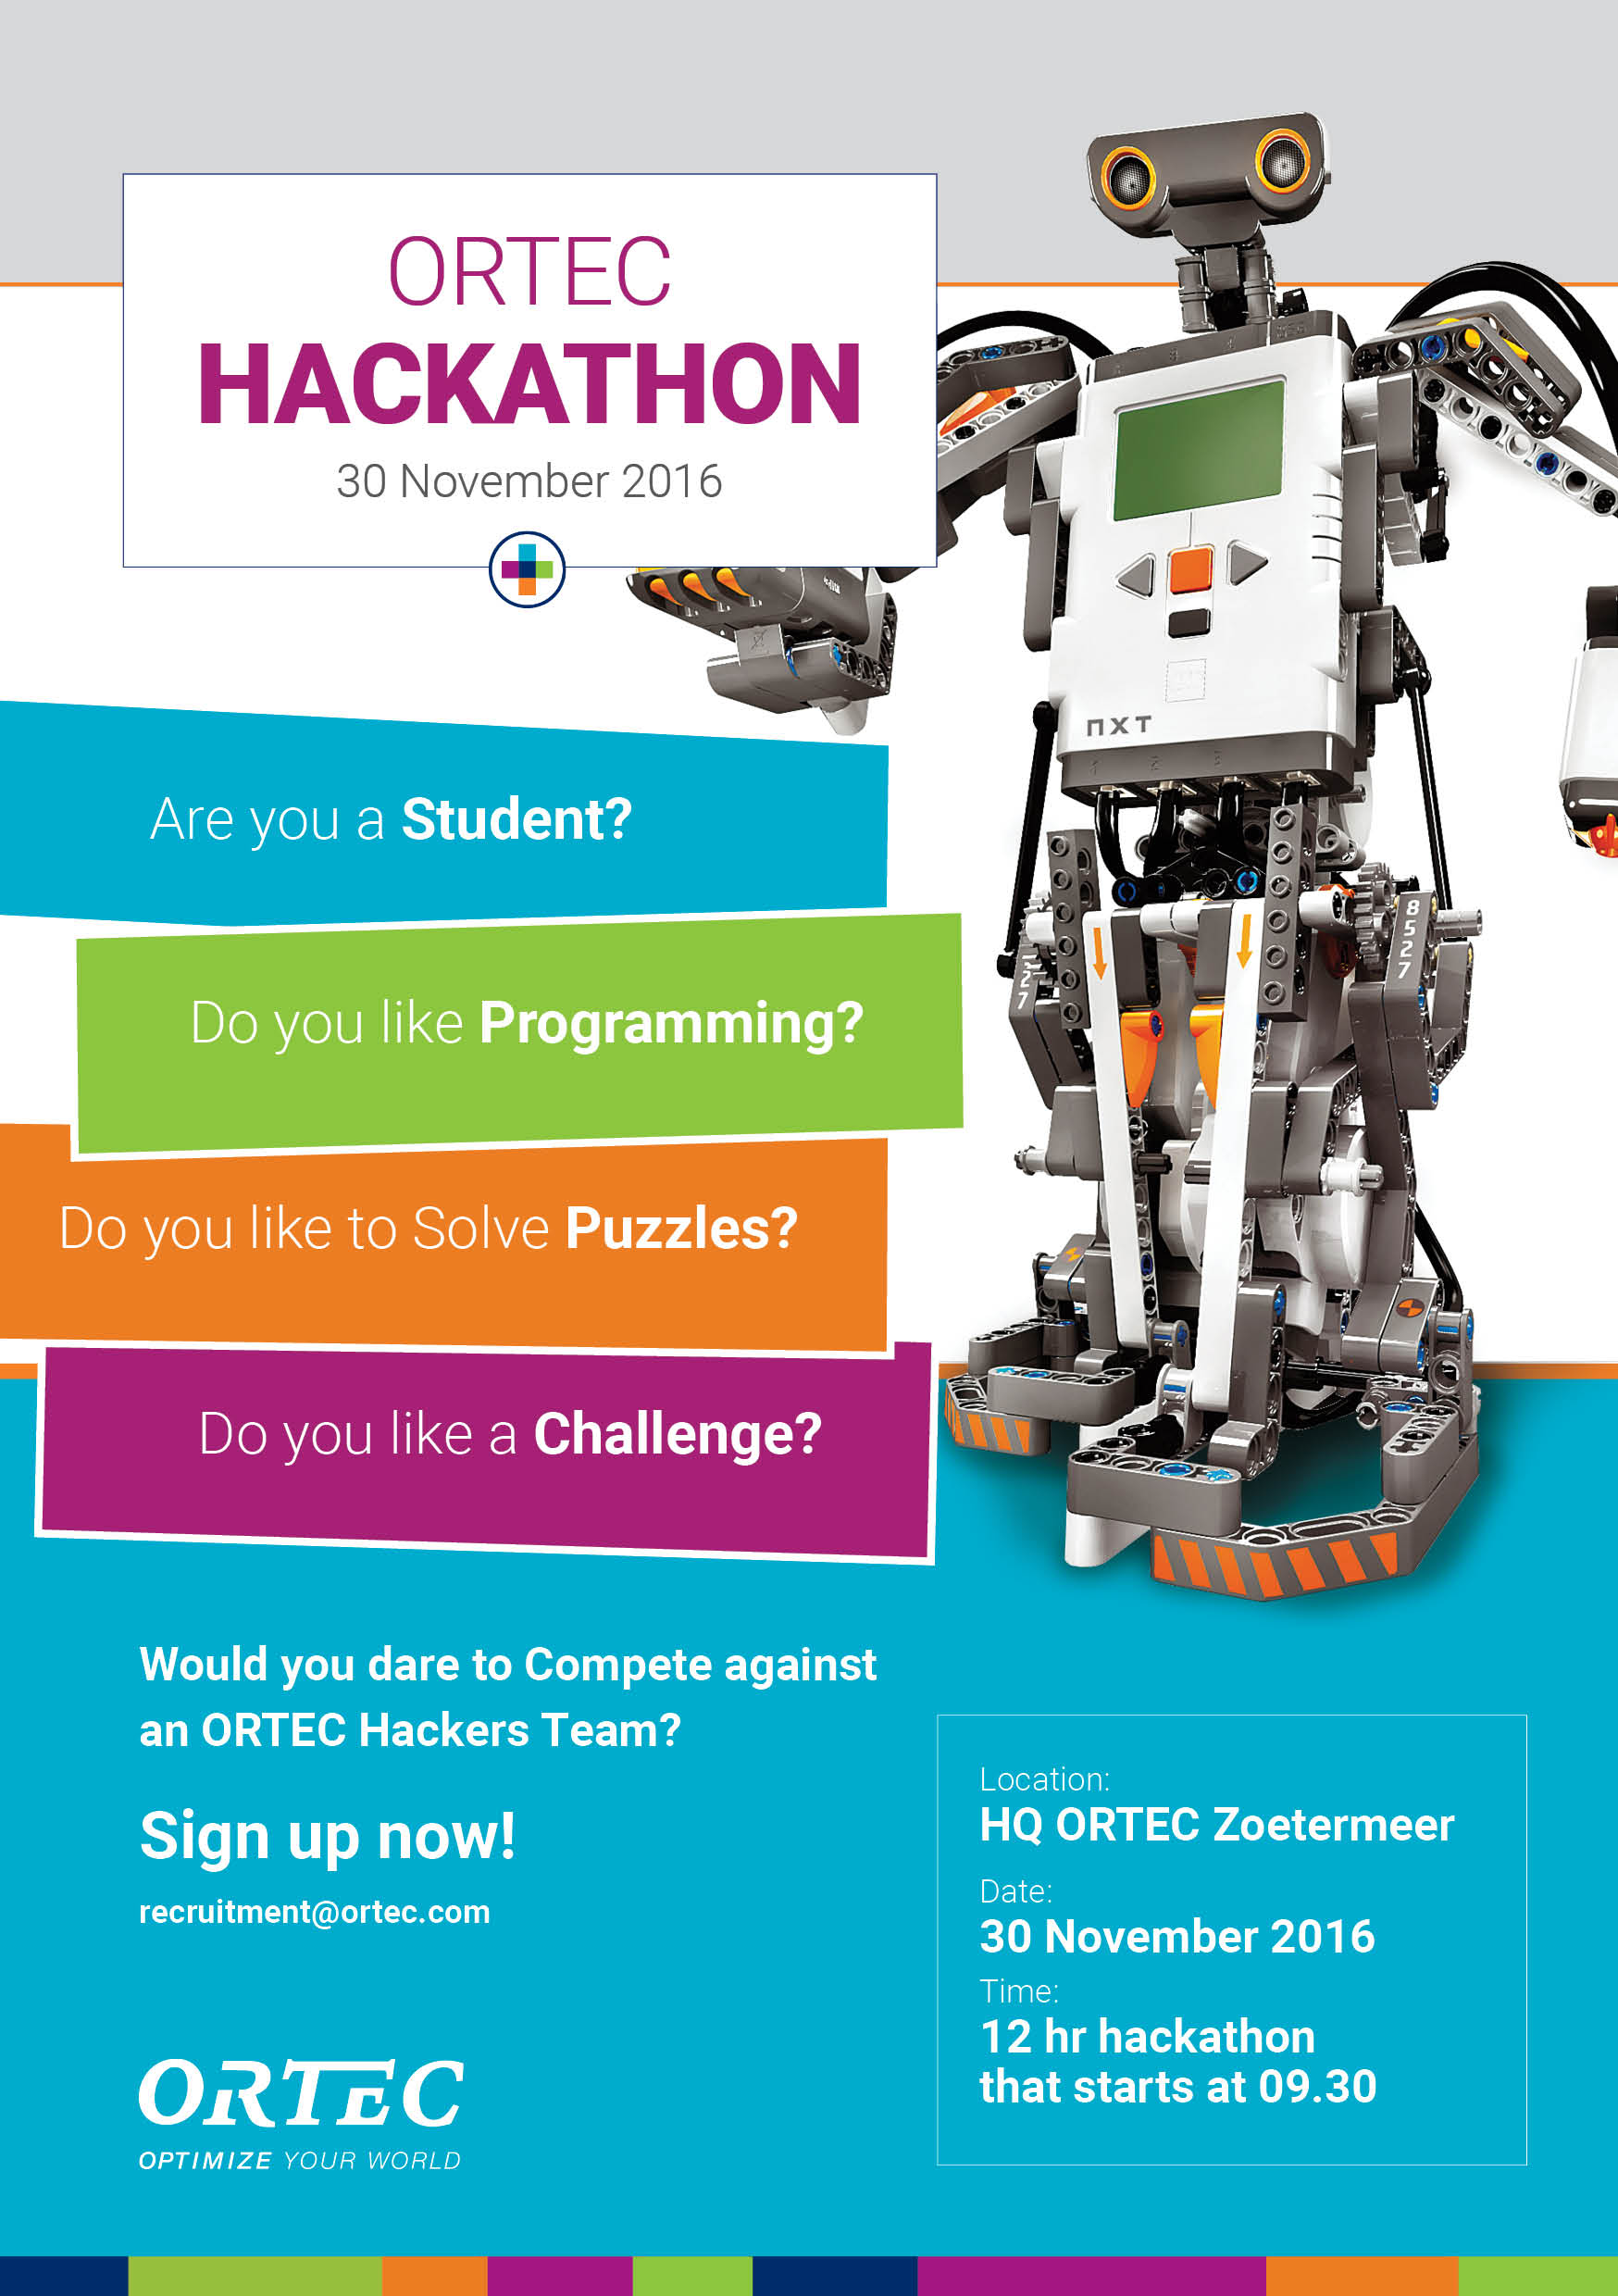 ortec-hackathon-flyer-a5-new